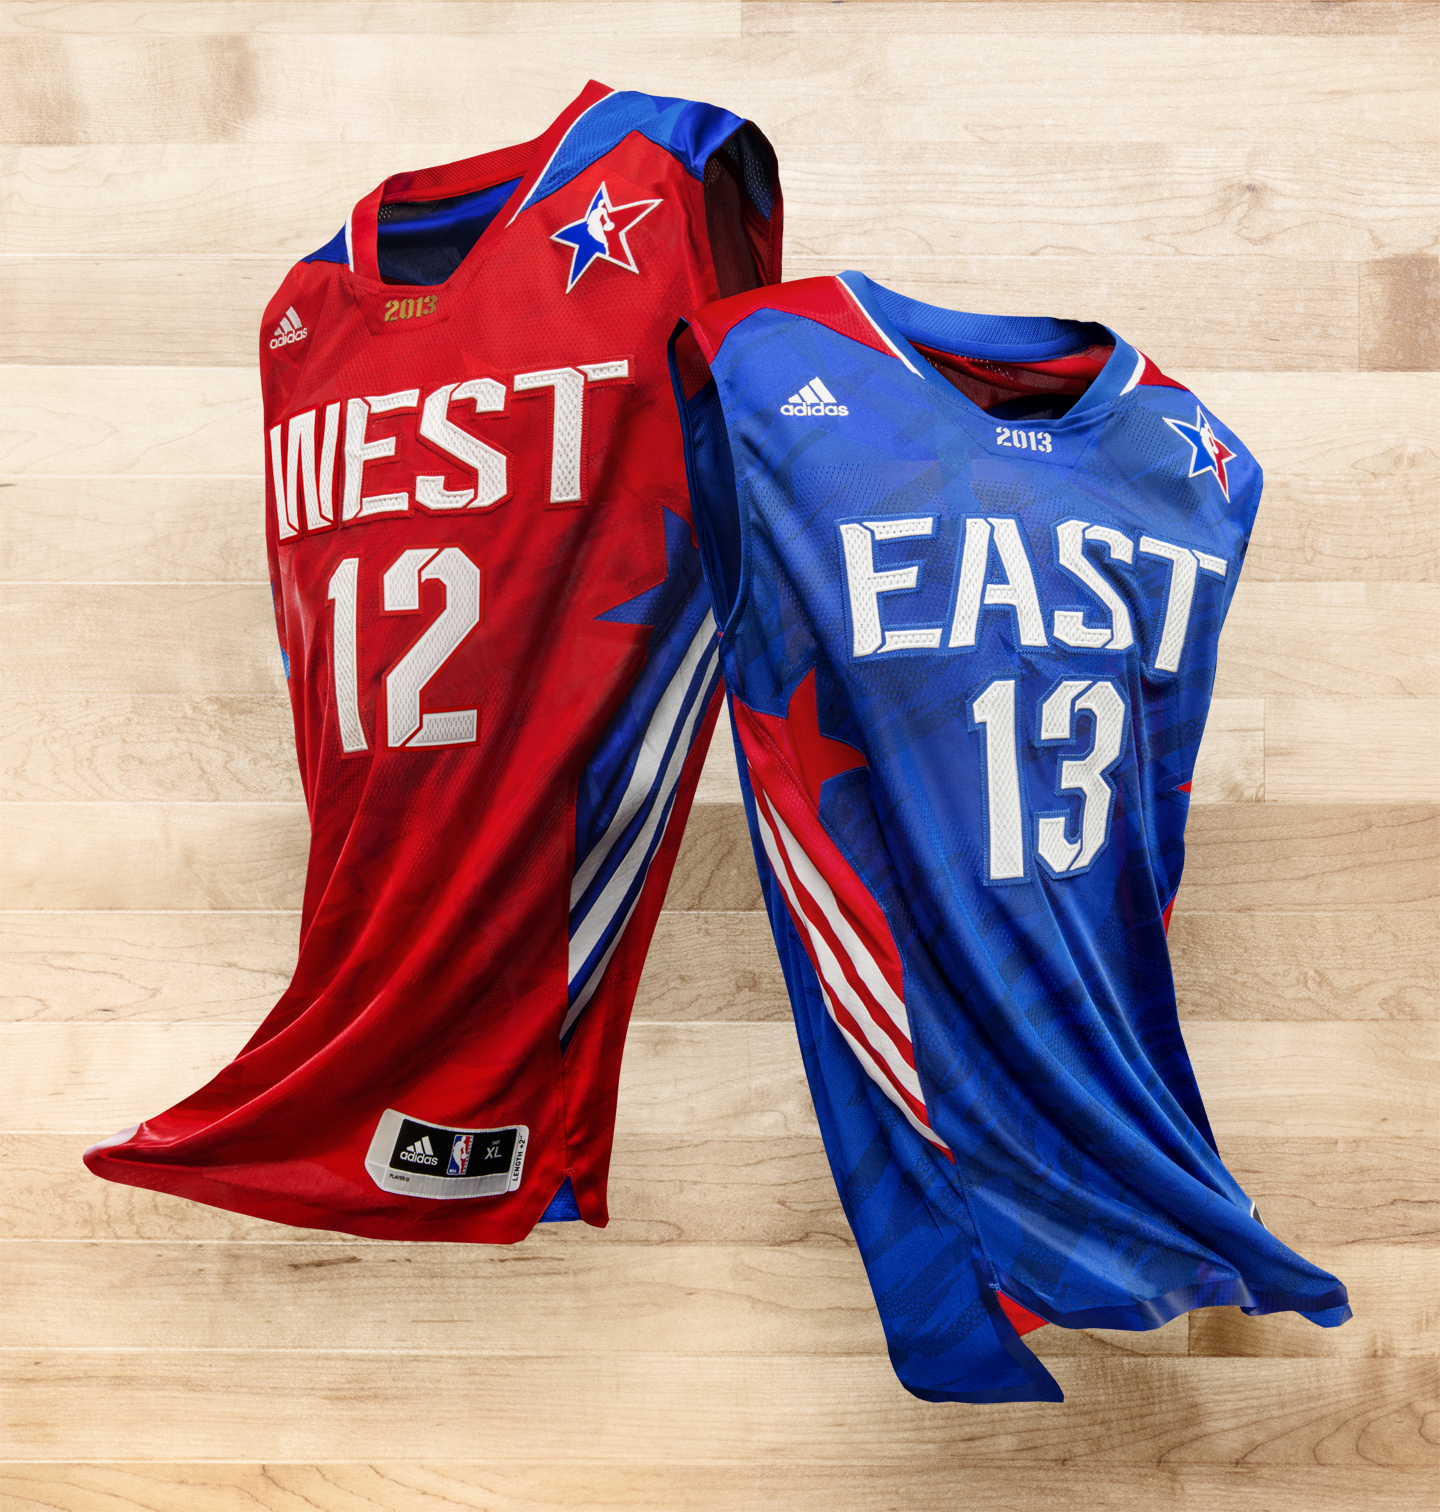 adidas designs Aeronautical History inspired 2013 NBA ALL-STAR uniforms